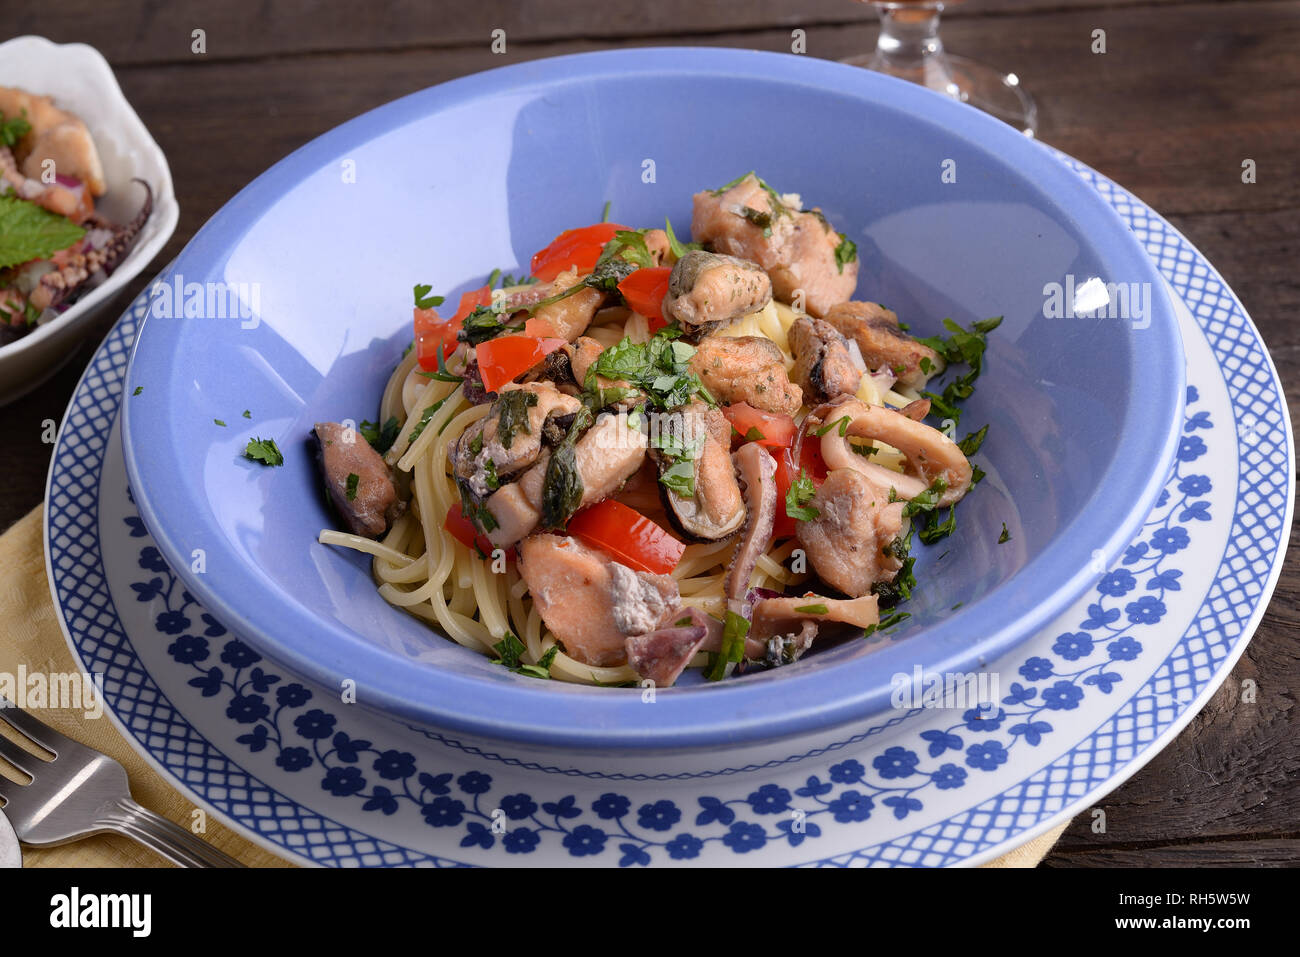 Plate of spaghetti with clams fish and shellfish on wooden table Stock Photo